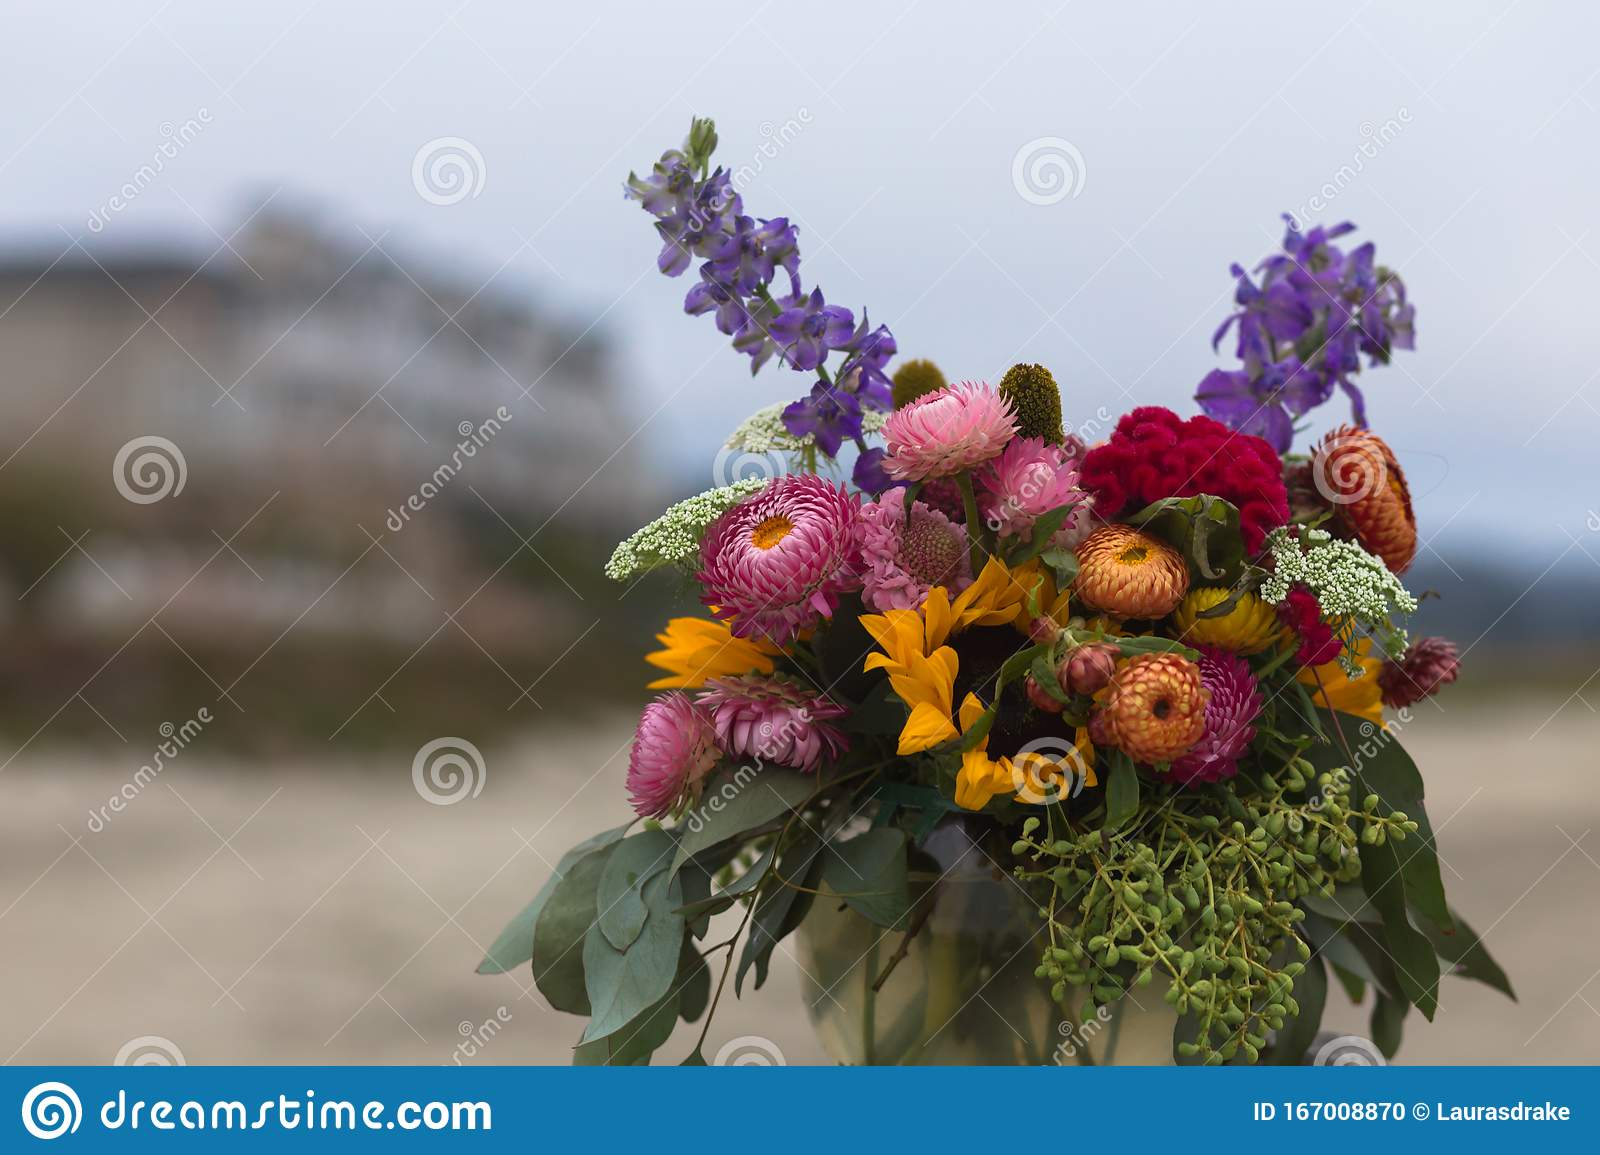 Bouquet Of Chrysanthemums Eucalyptus And Sunflowers On A Sandy Beach Stock Photo Image Of Outdoors Glass 167008870